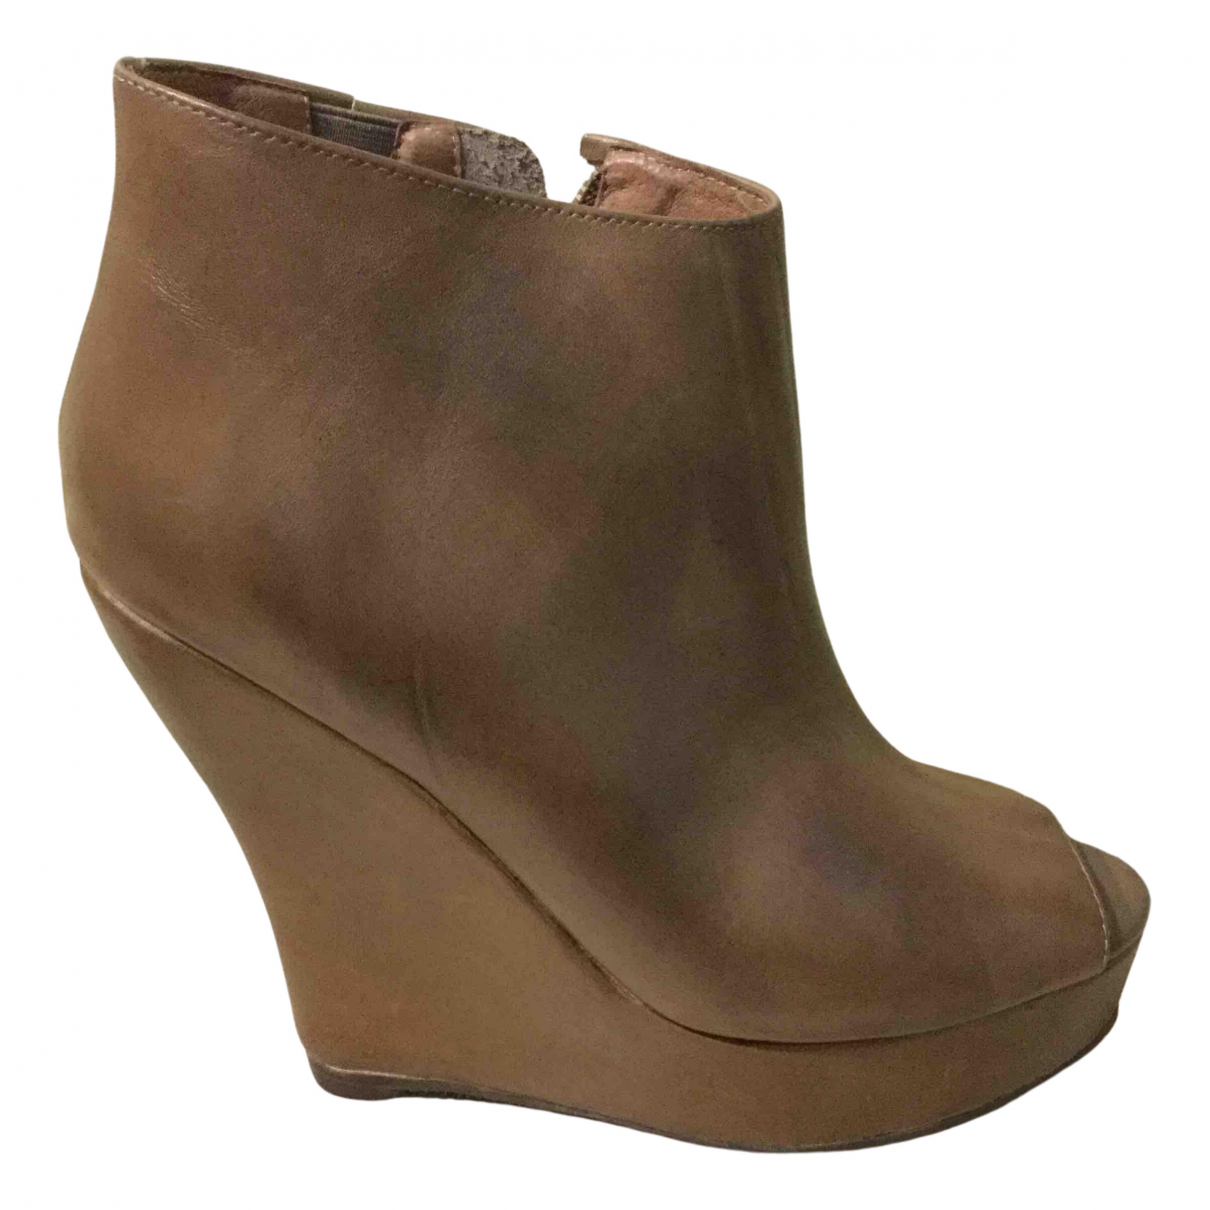 Jeffrey Campbell N Brown Leather Ankle boots for Women 37 IT